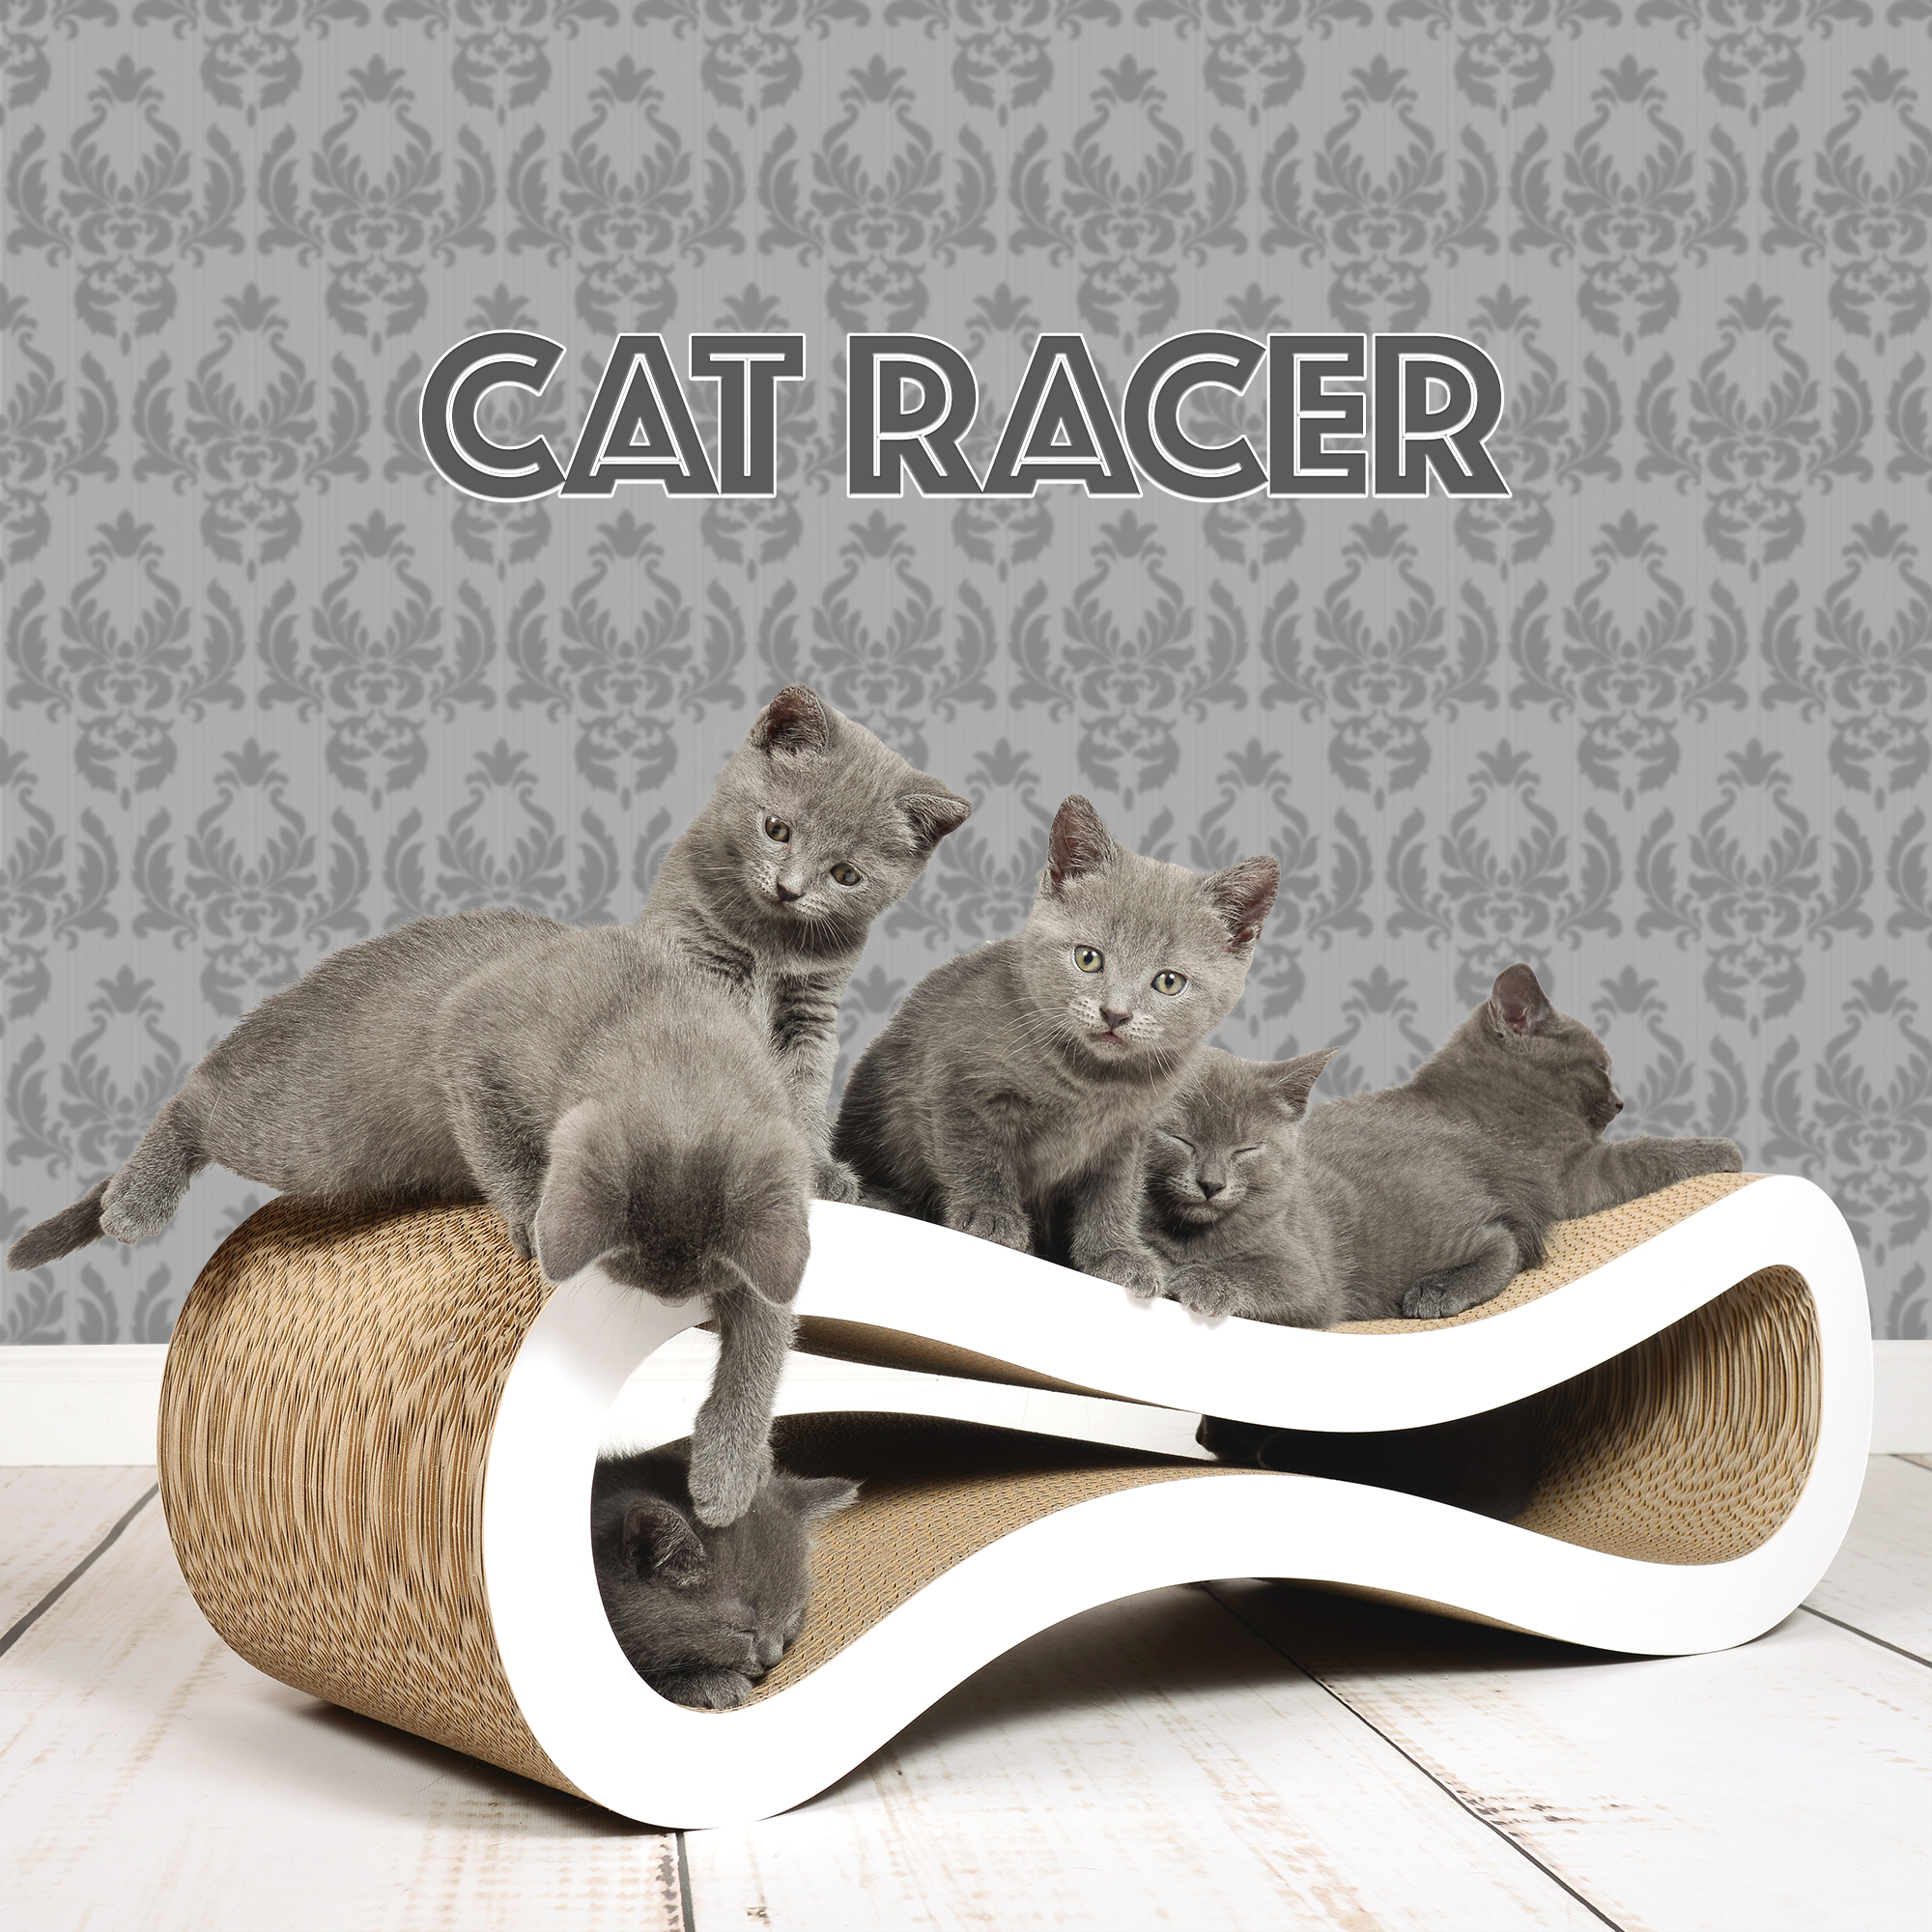 cat tree Cat Racer - Made in Germany